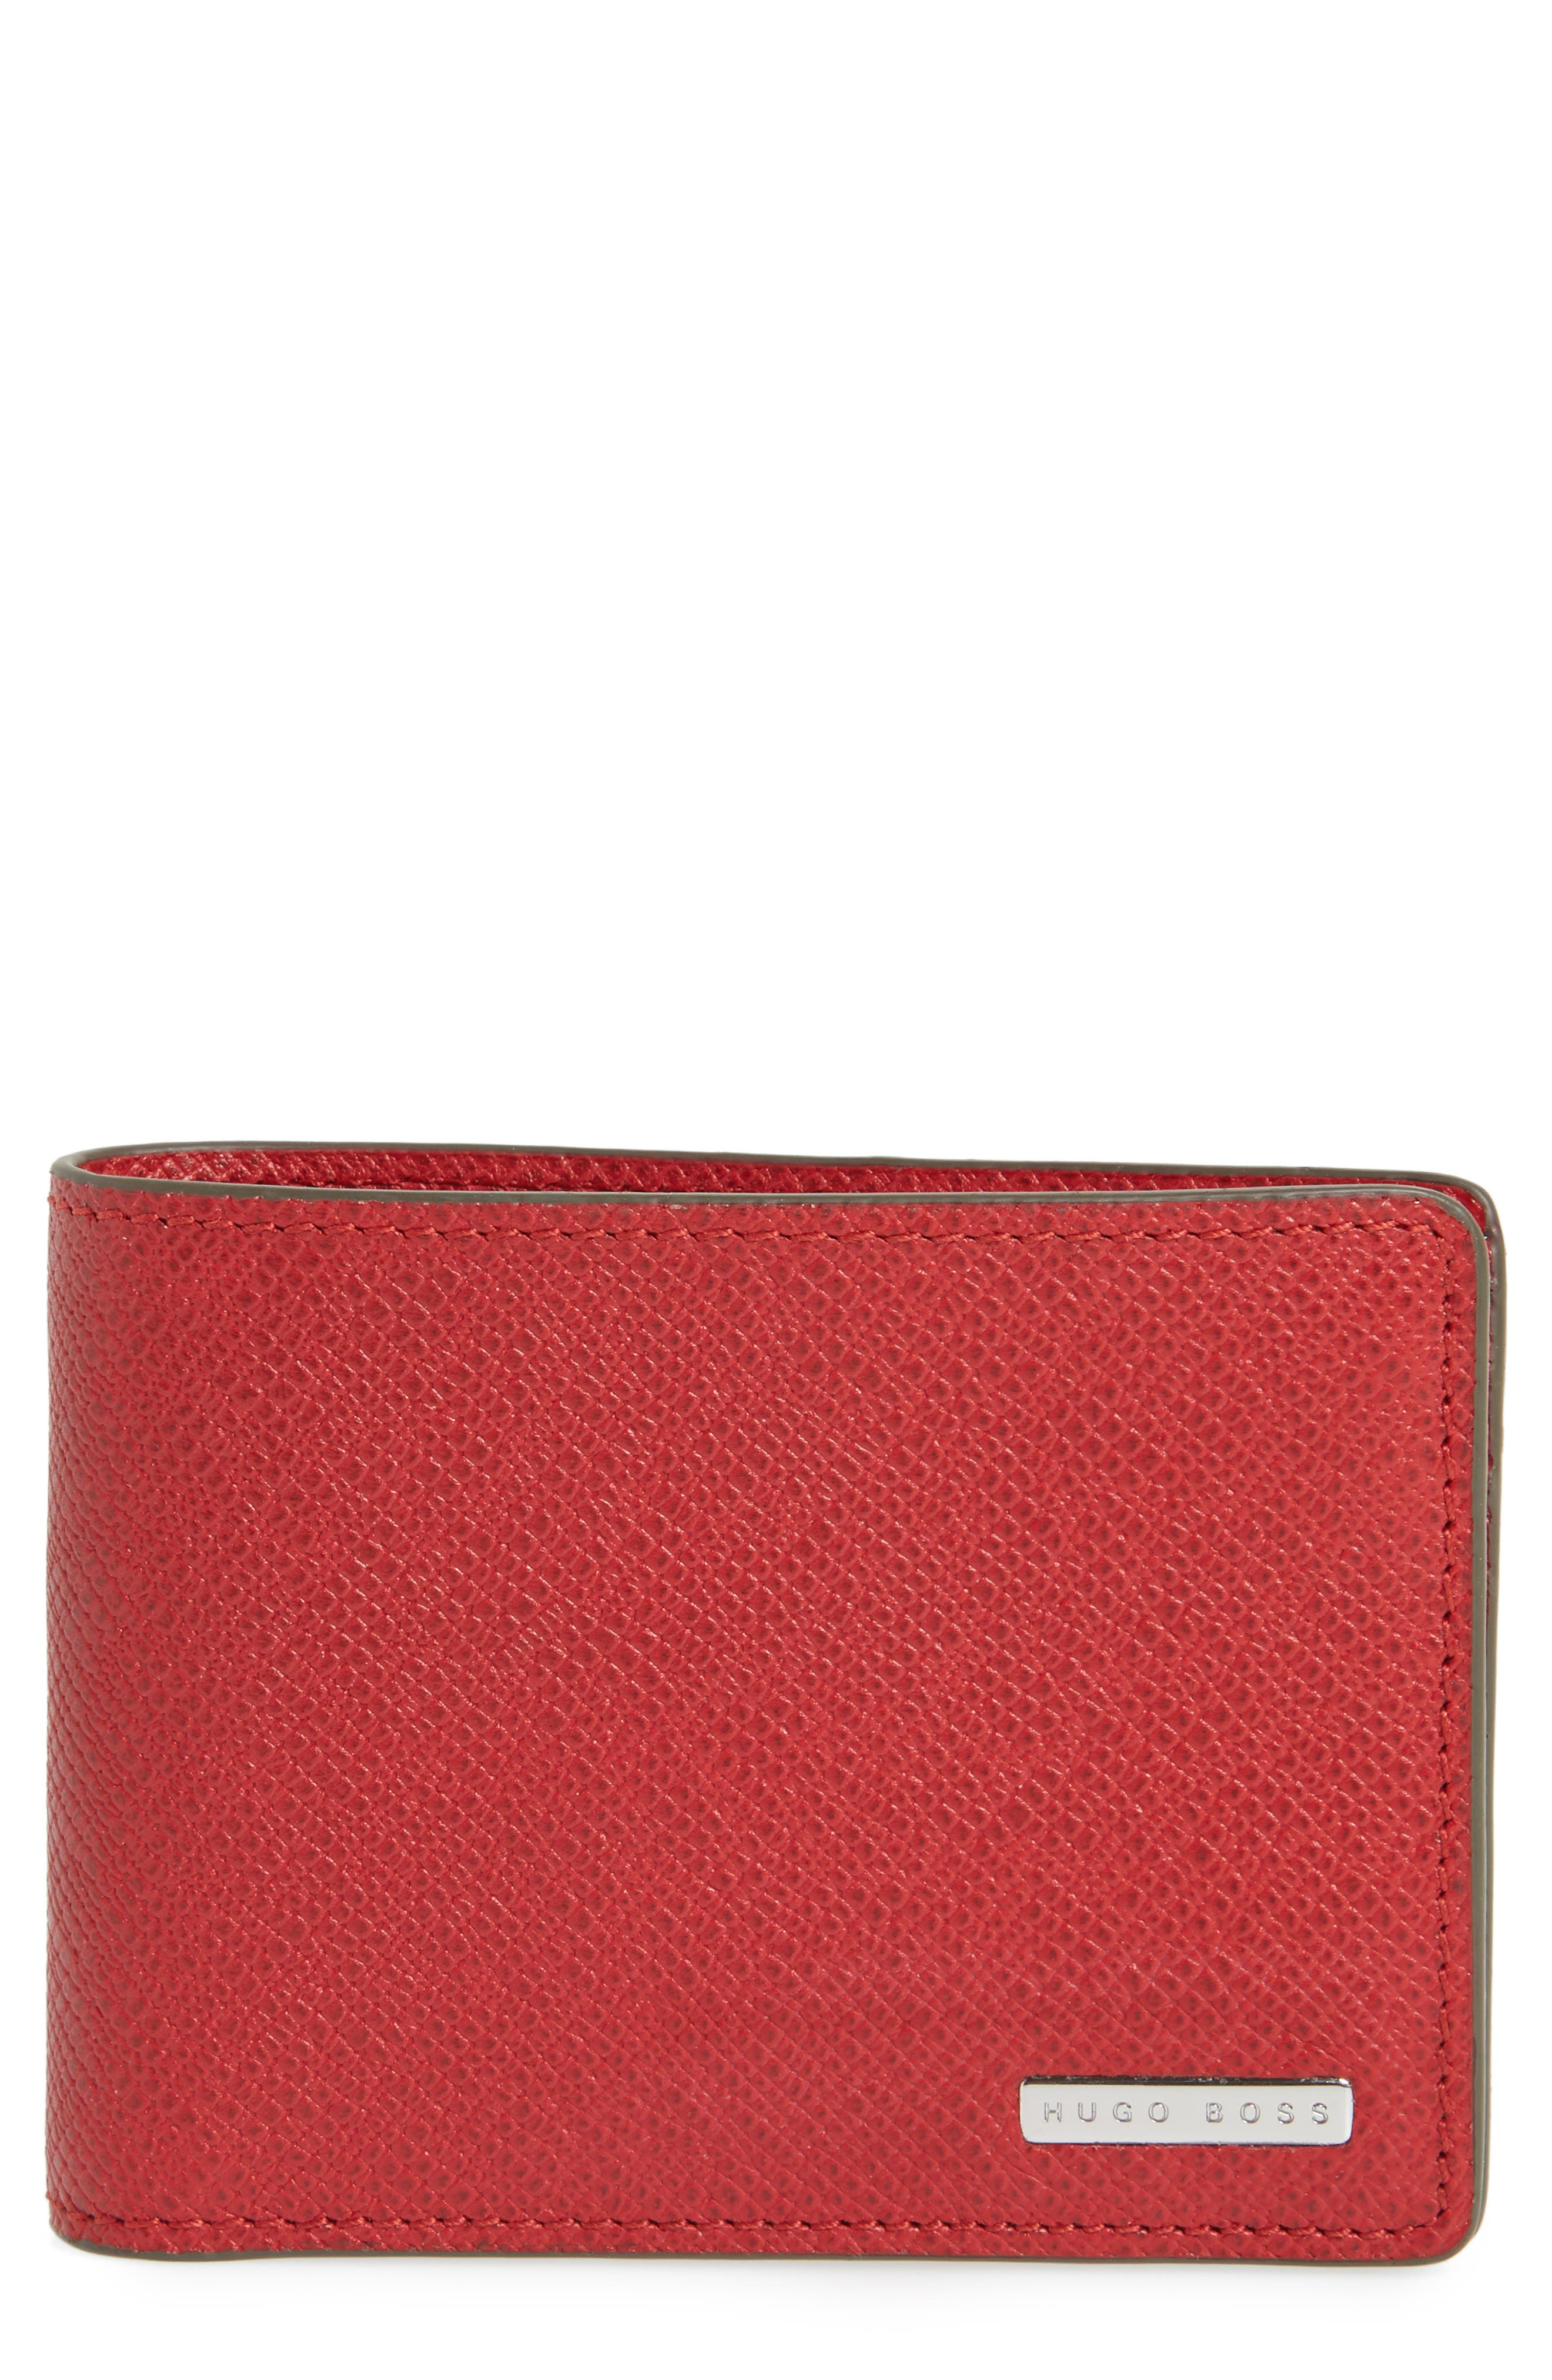 'Signature' Bifold Wallet,                             Main thumbnail 1, color,                             Bright Red